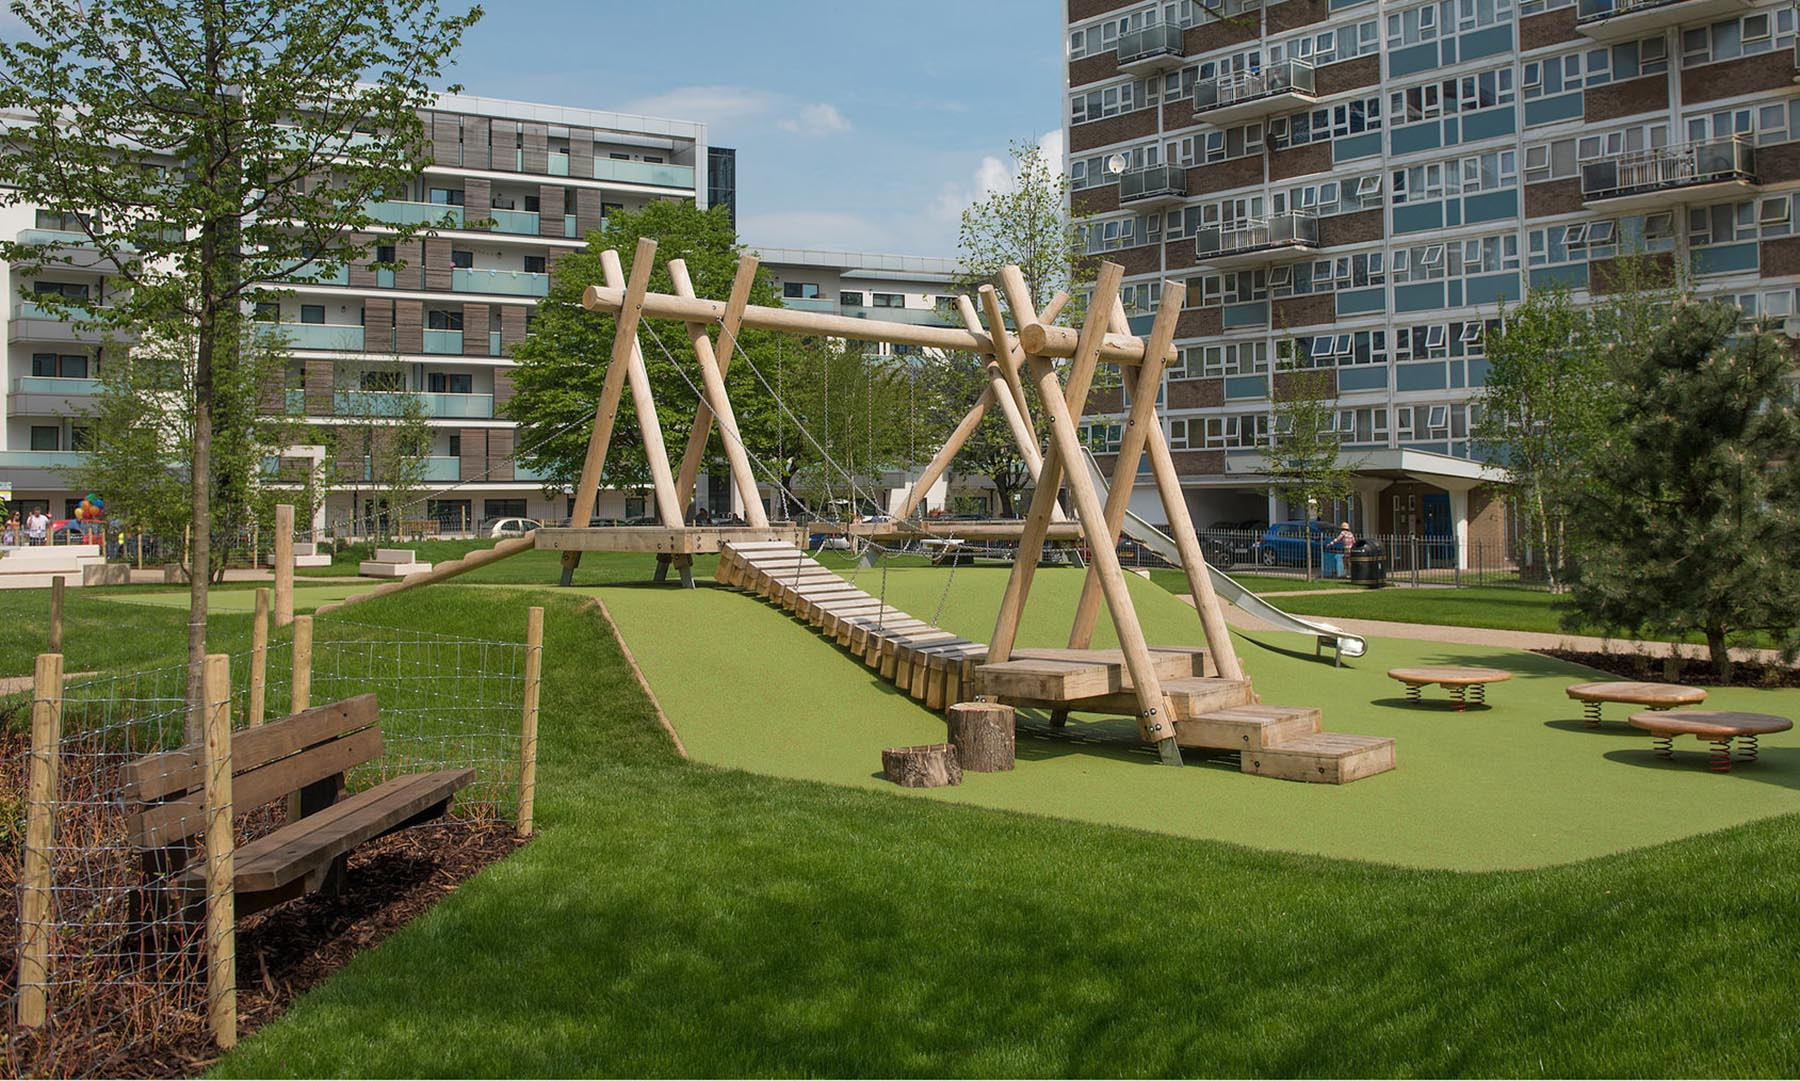 bespoke playgrounds woodhouse urban park